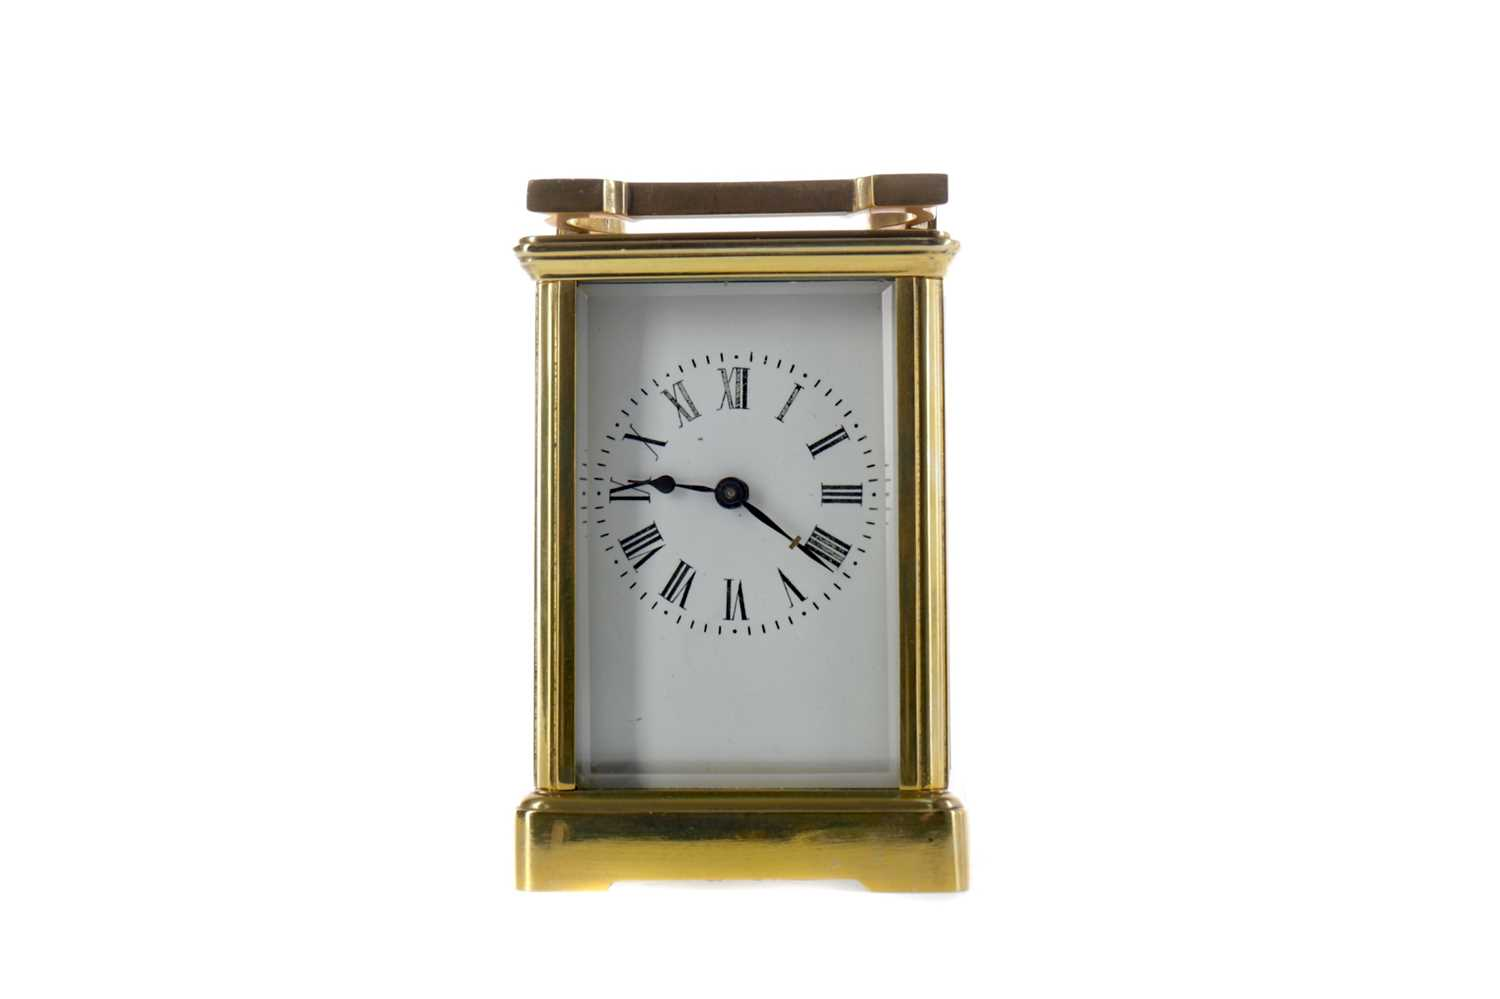 Lot 1762 - AN EARLY 20TH CENTURY CARRIAGE CLOCK